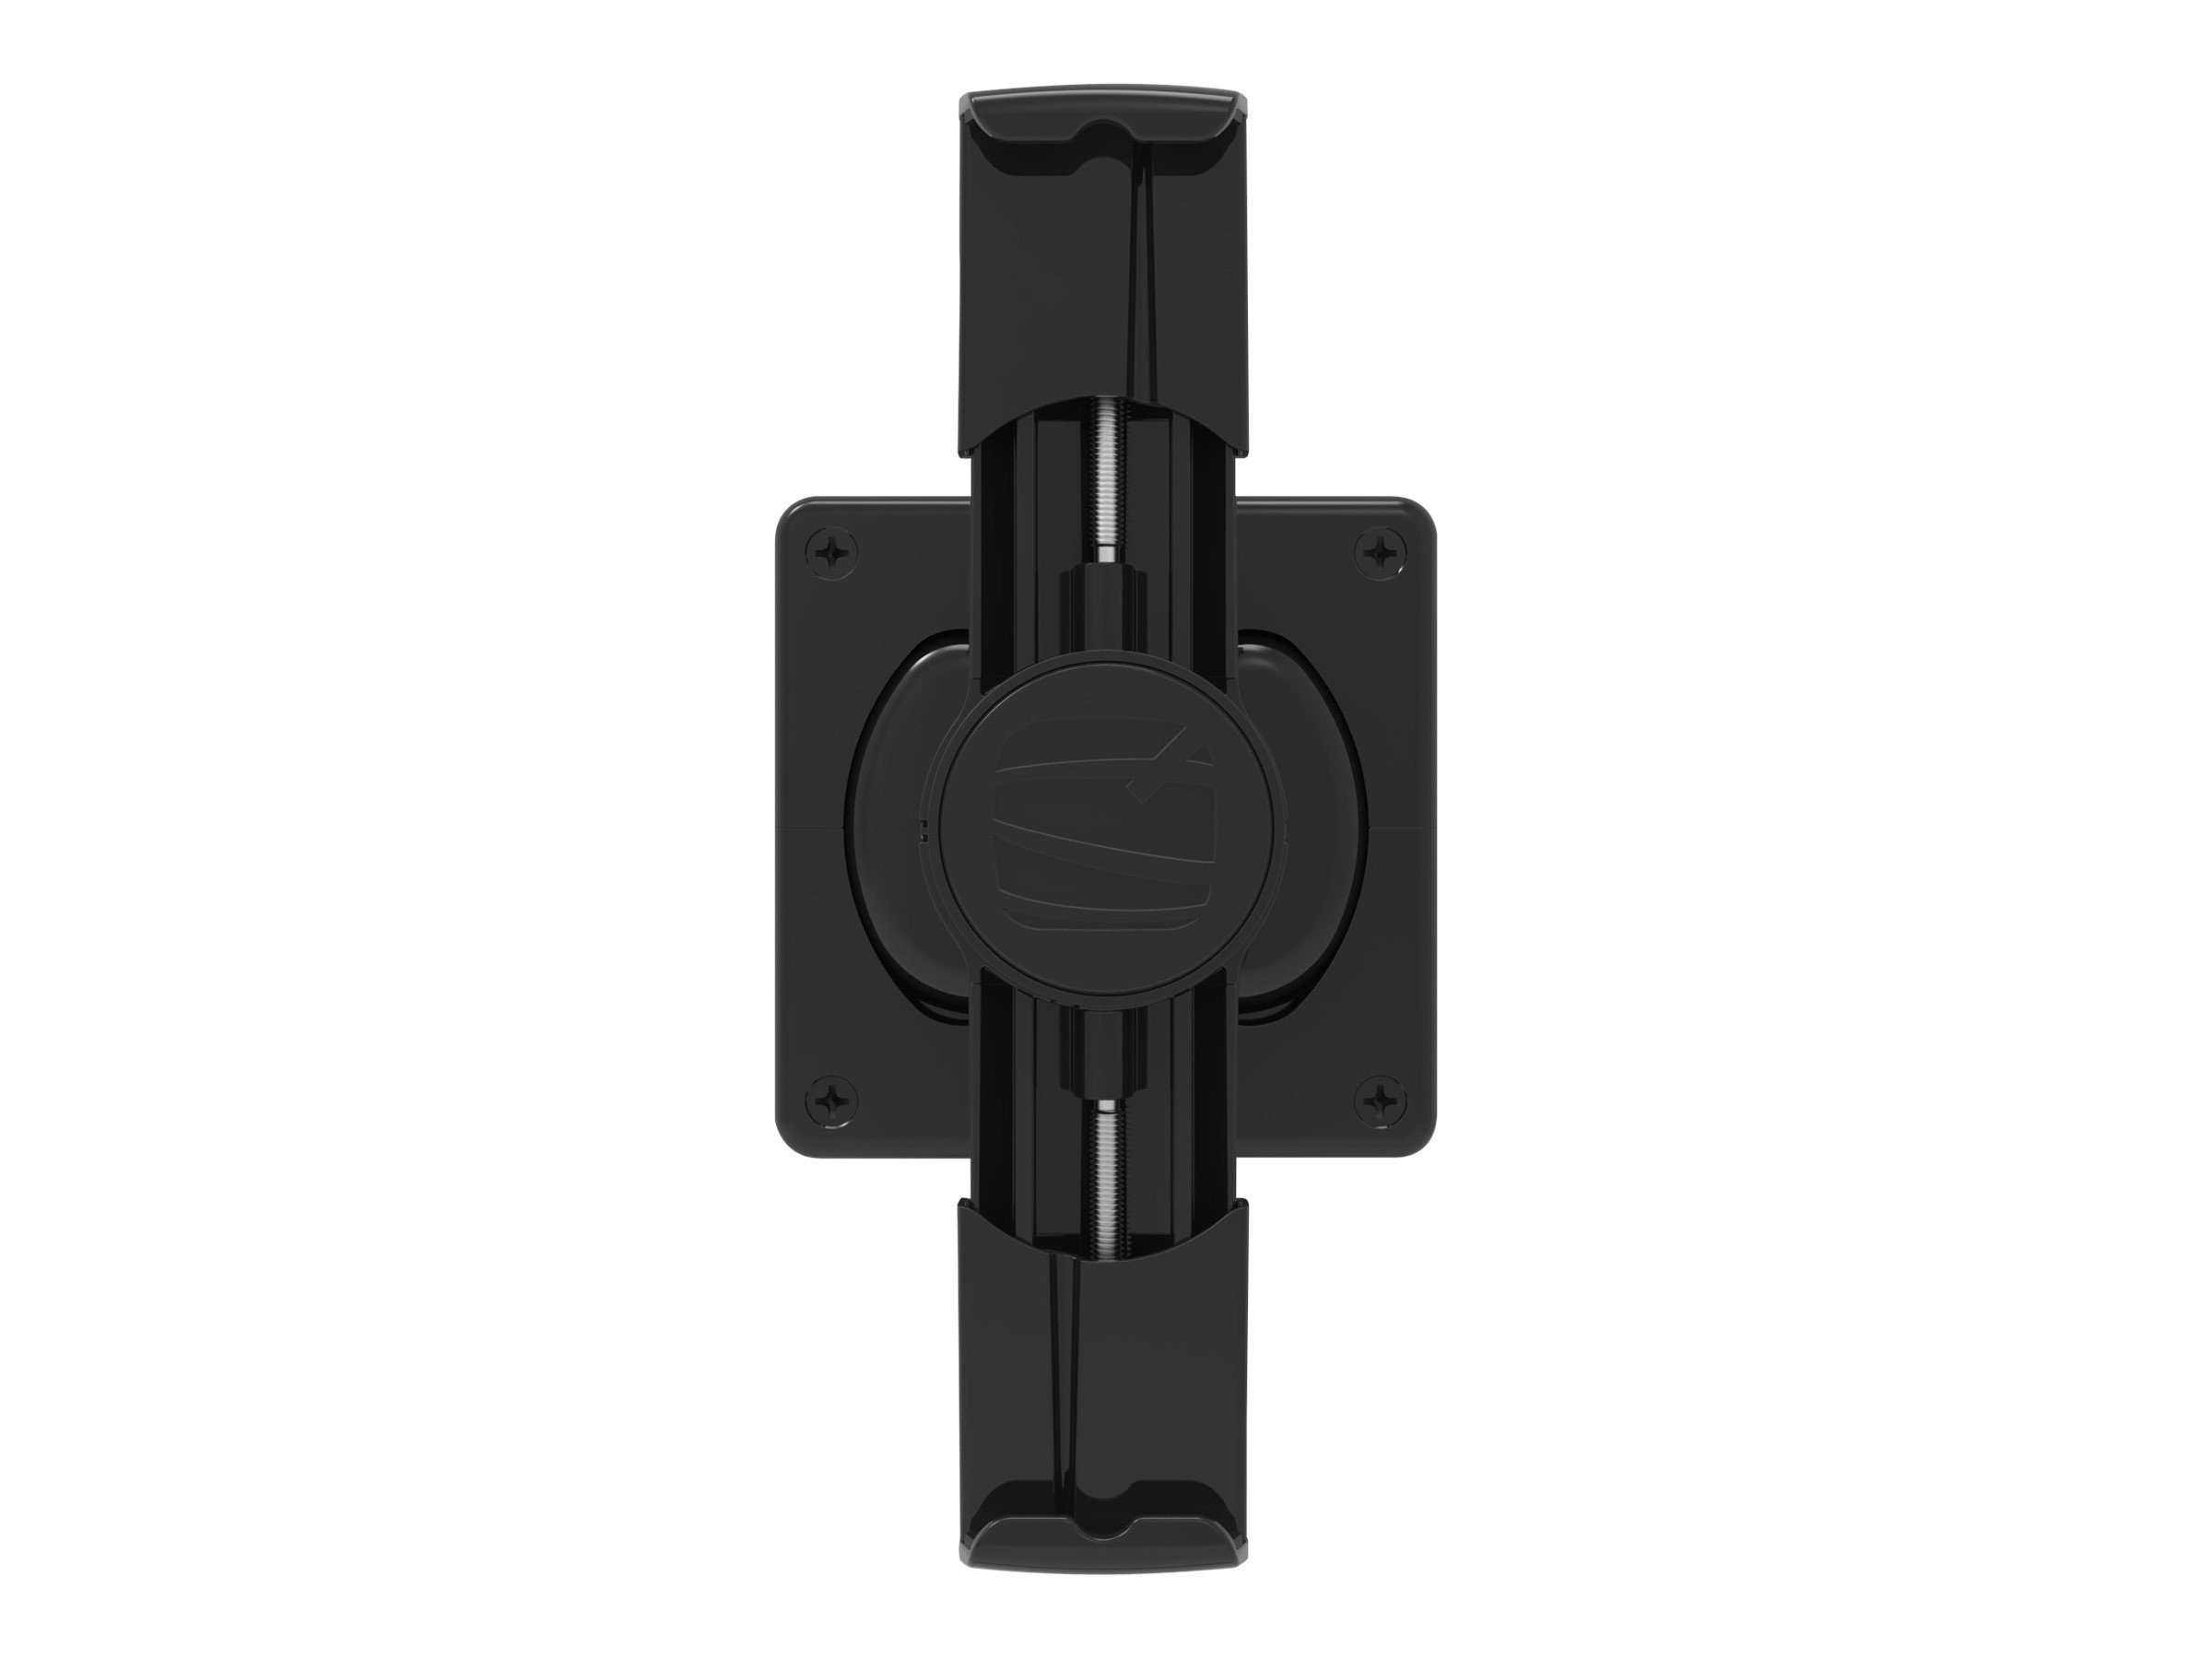 Maclocks Universal Cling Vesa Wall Mount